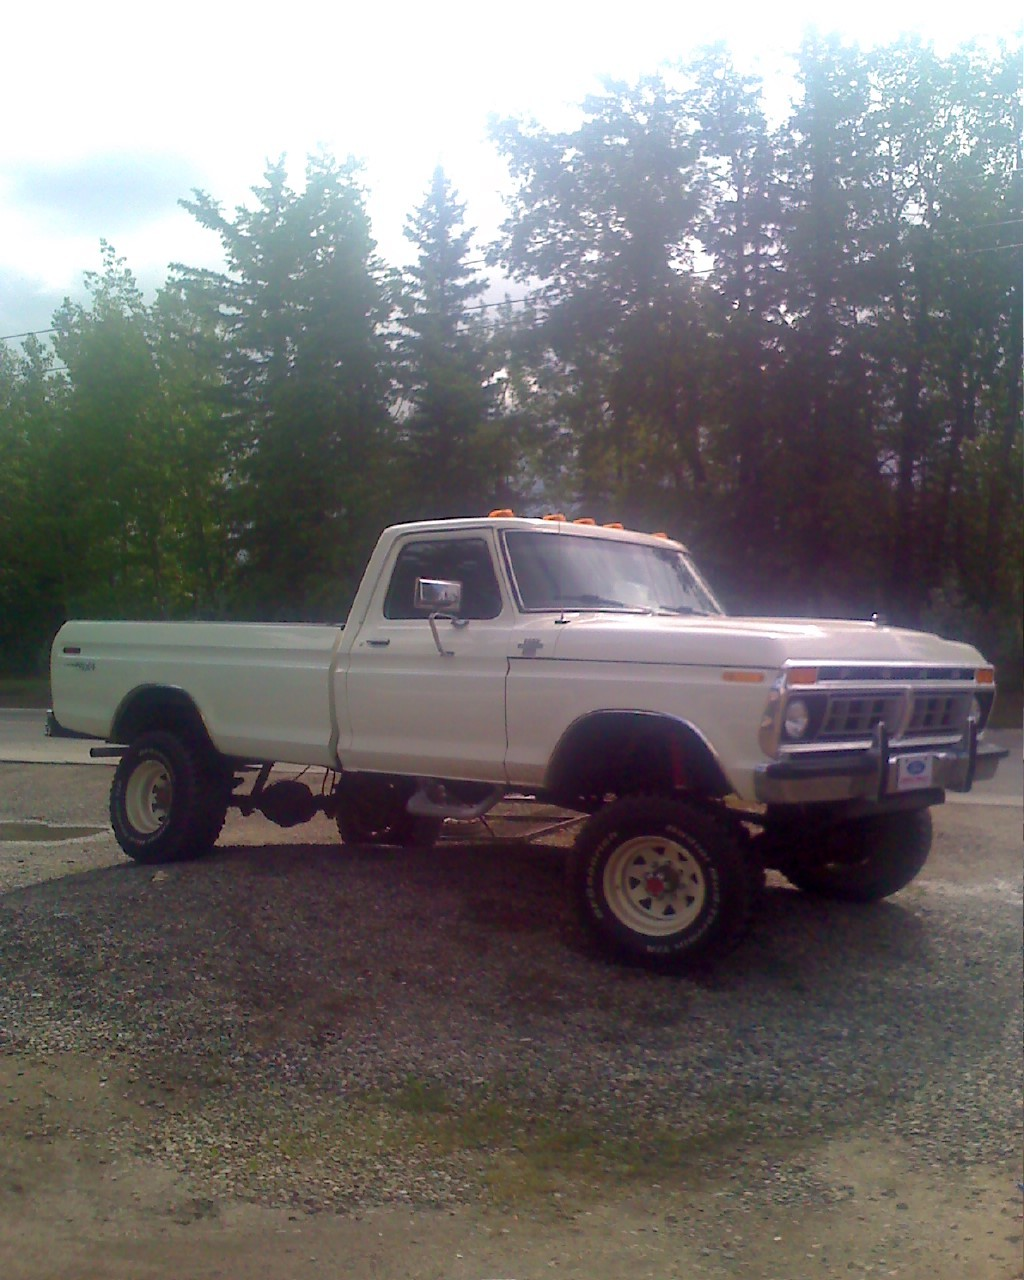 Brandon Mifsud 1976 Ford Ranger Regular Cab Specs, Photos